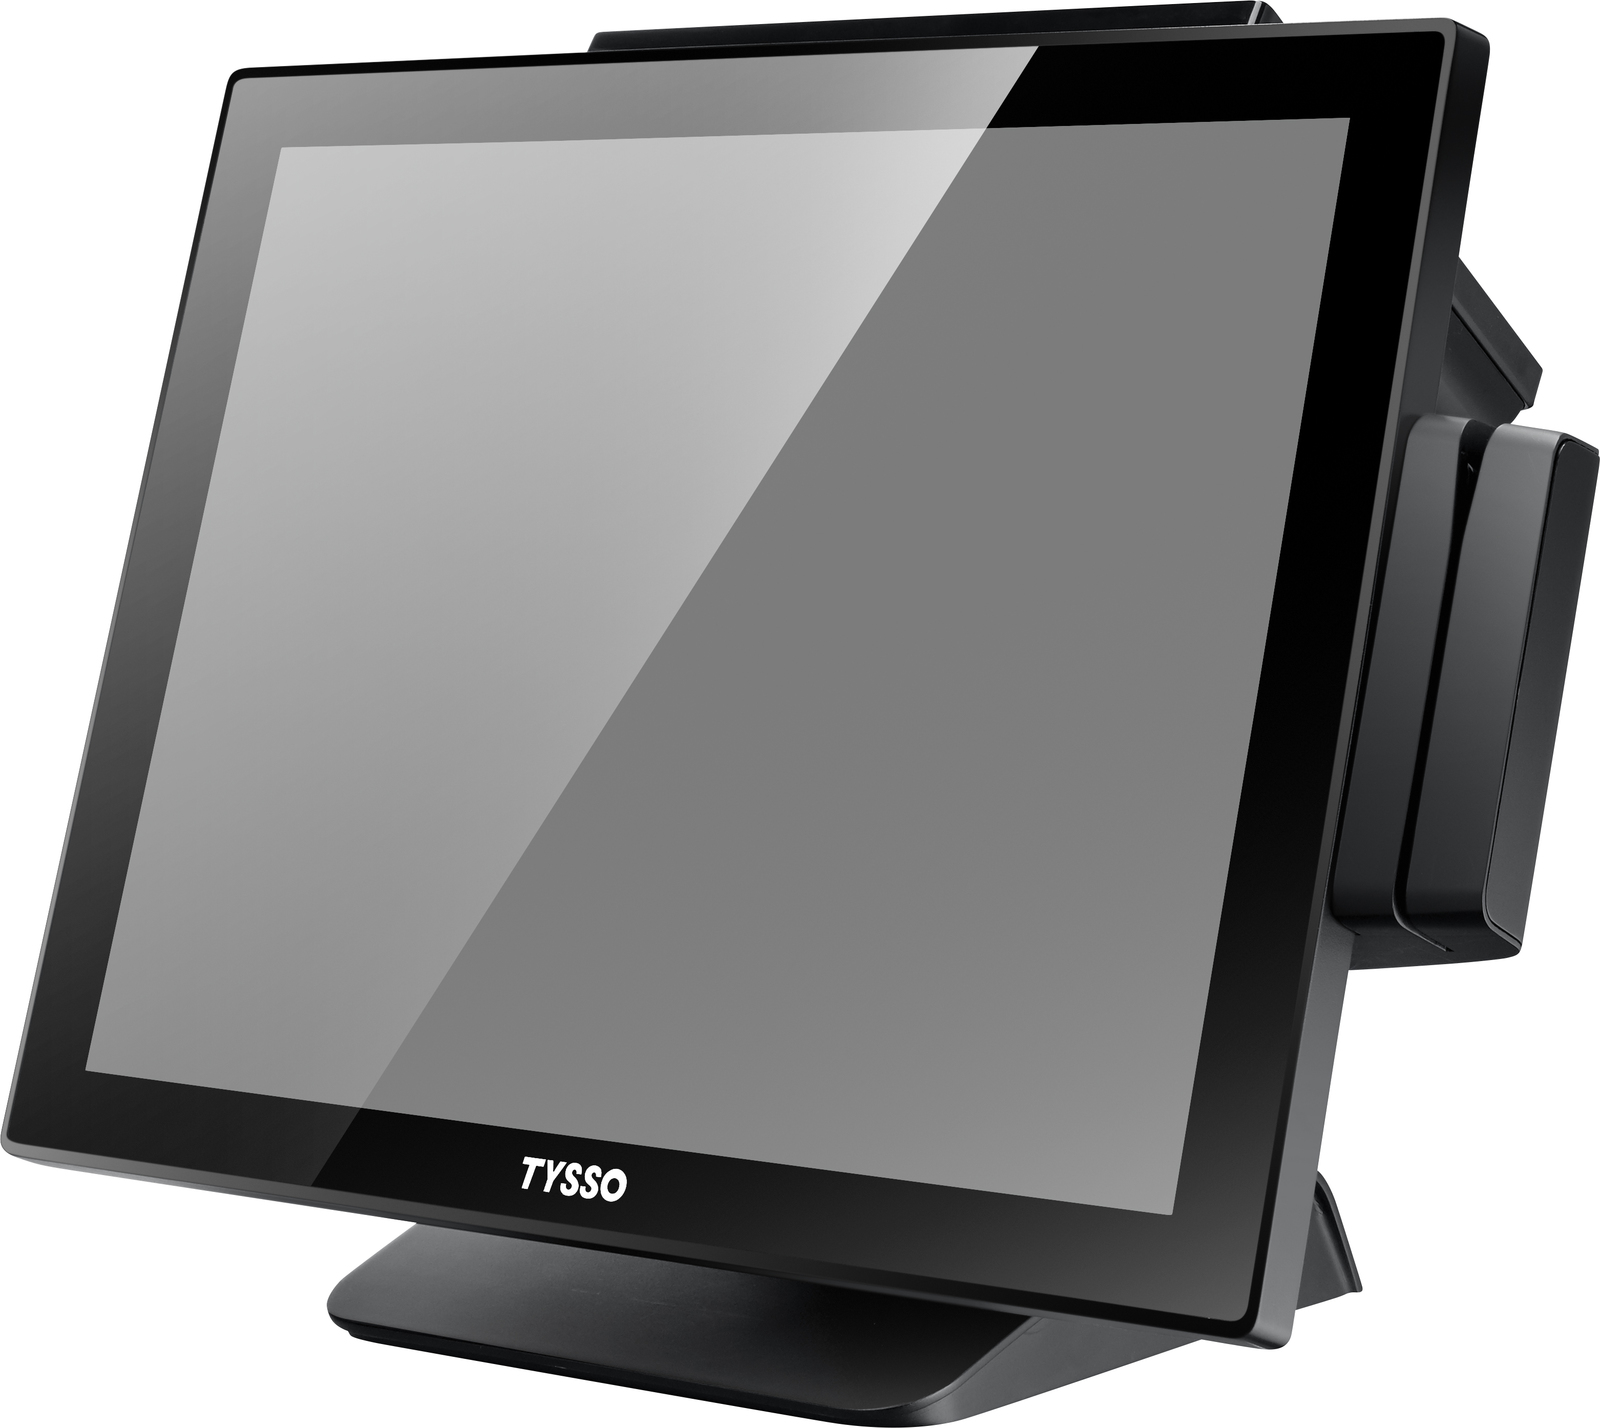 "Tysso 15.1"" Touchscreen terminal P-CAP screen, 64GB SSD 4GB RAM, J1900 Quad Core, No O/S - Approx 1-"